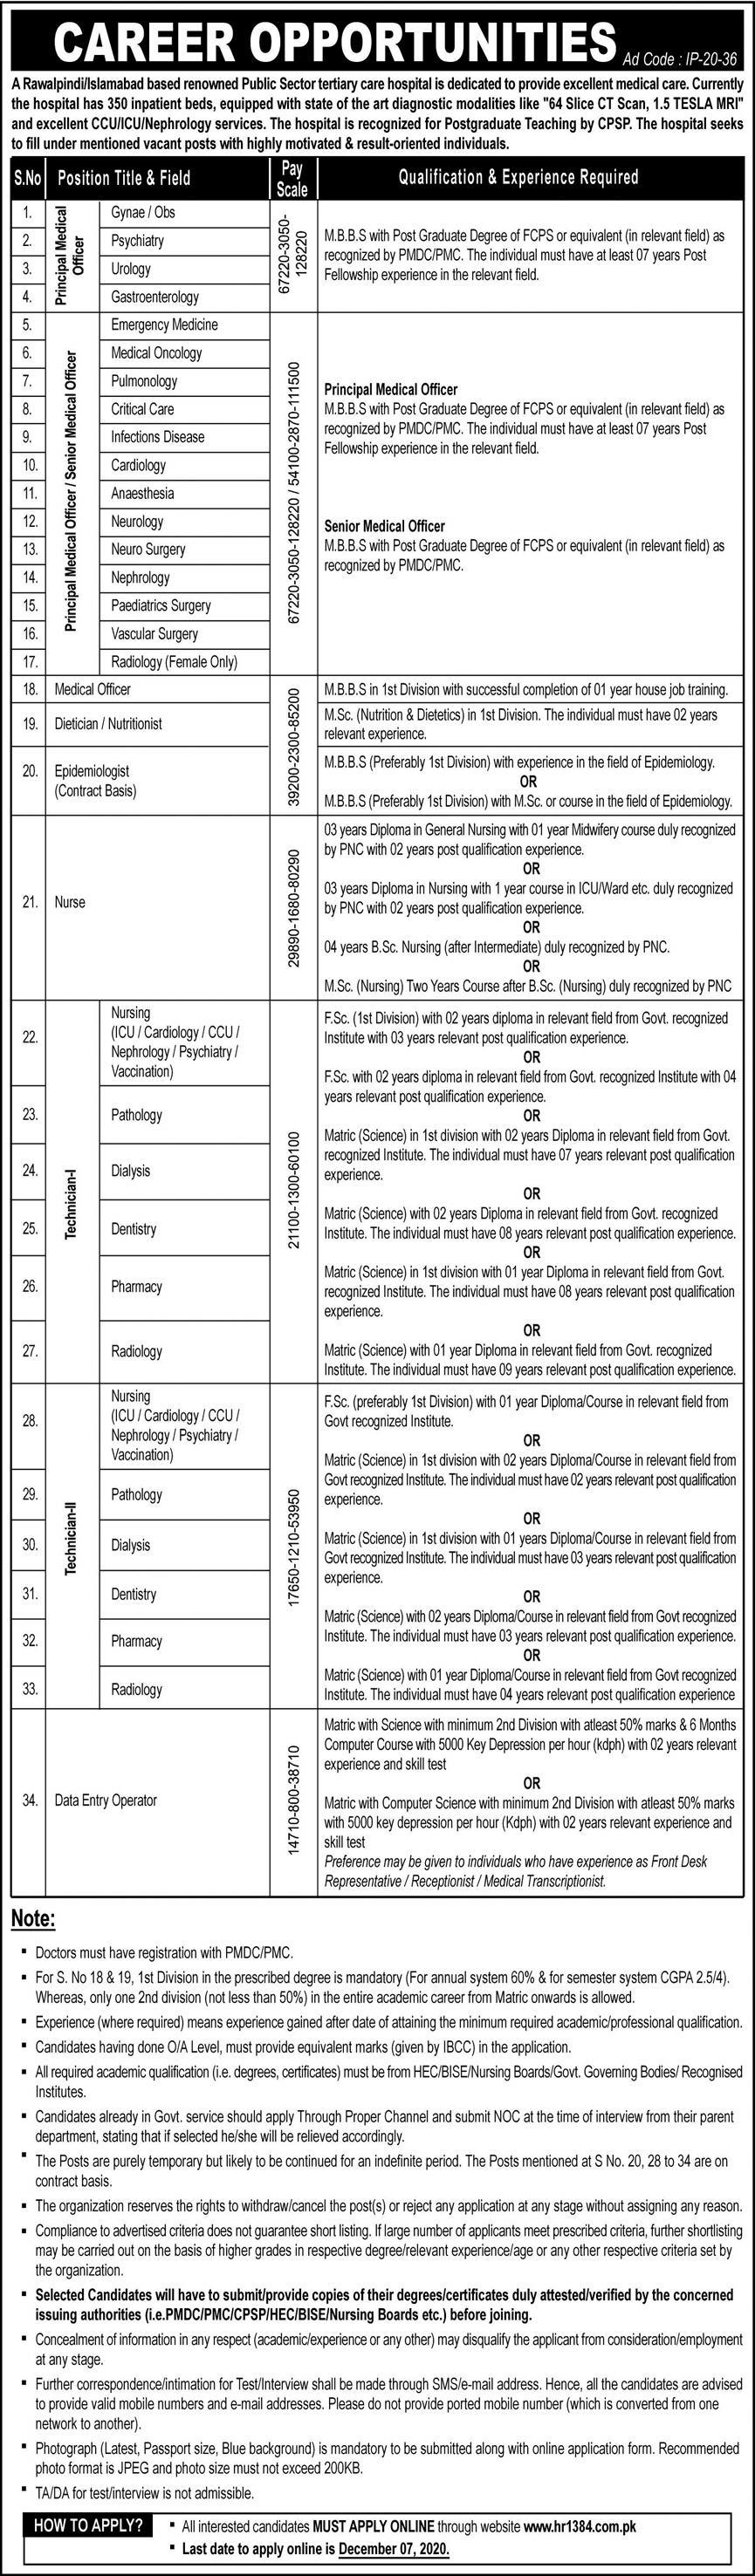 Public Sector Tertiary Care Hospital Jobs in Pakistan - Download Job Online Application Form - www.hr1384.com.pk Jobs 2021